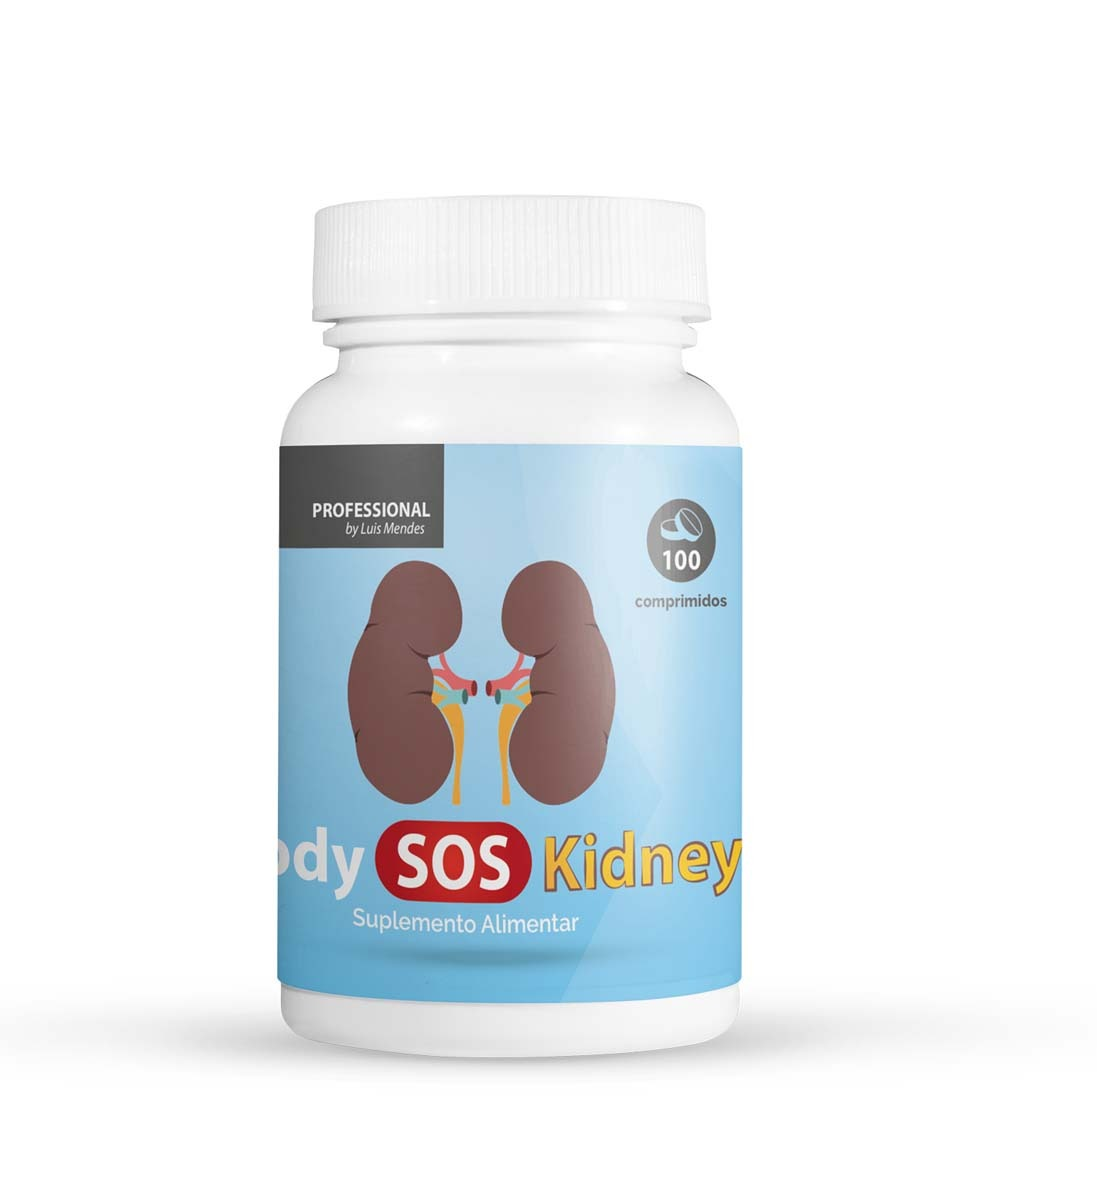 Body Sos Kidney